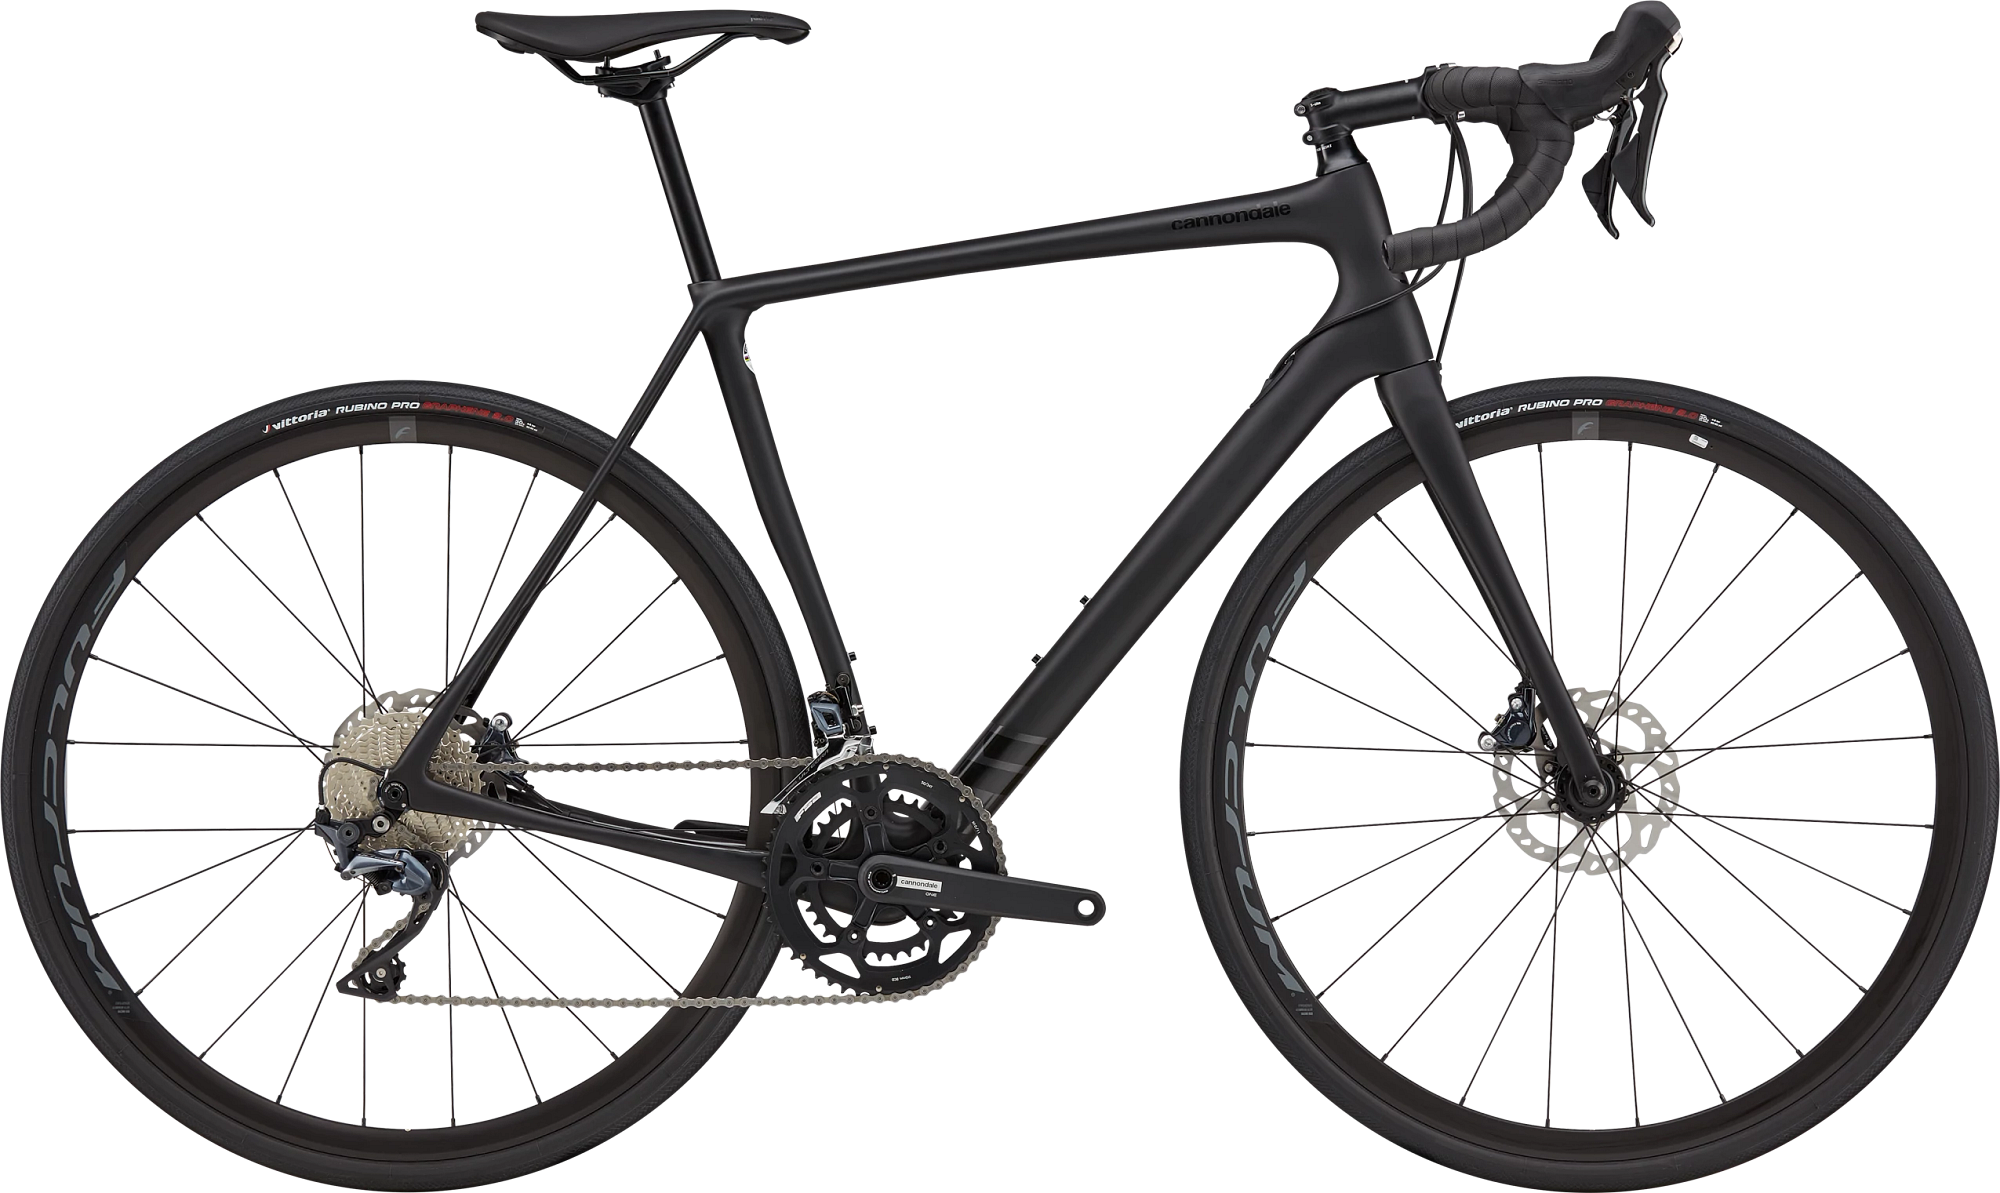 Synapse Carbon Ultegra graphic